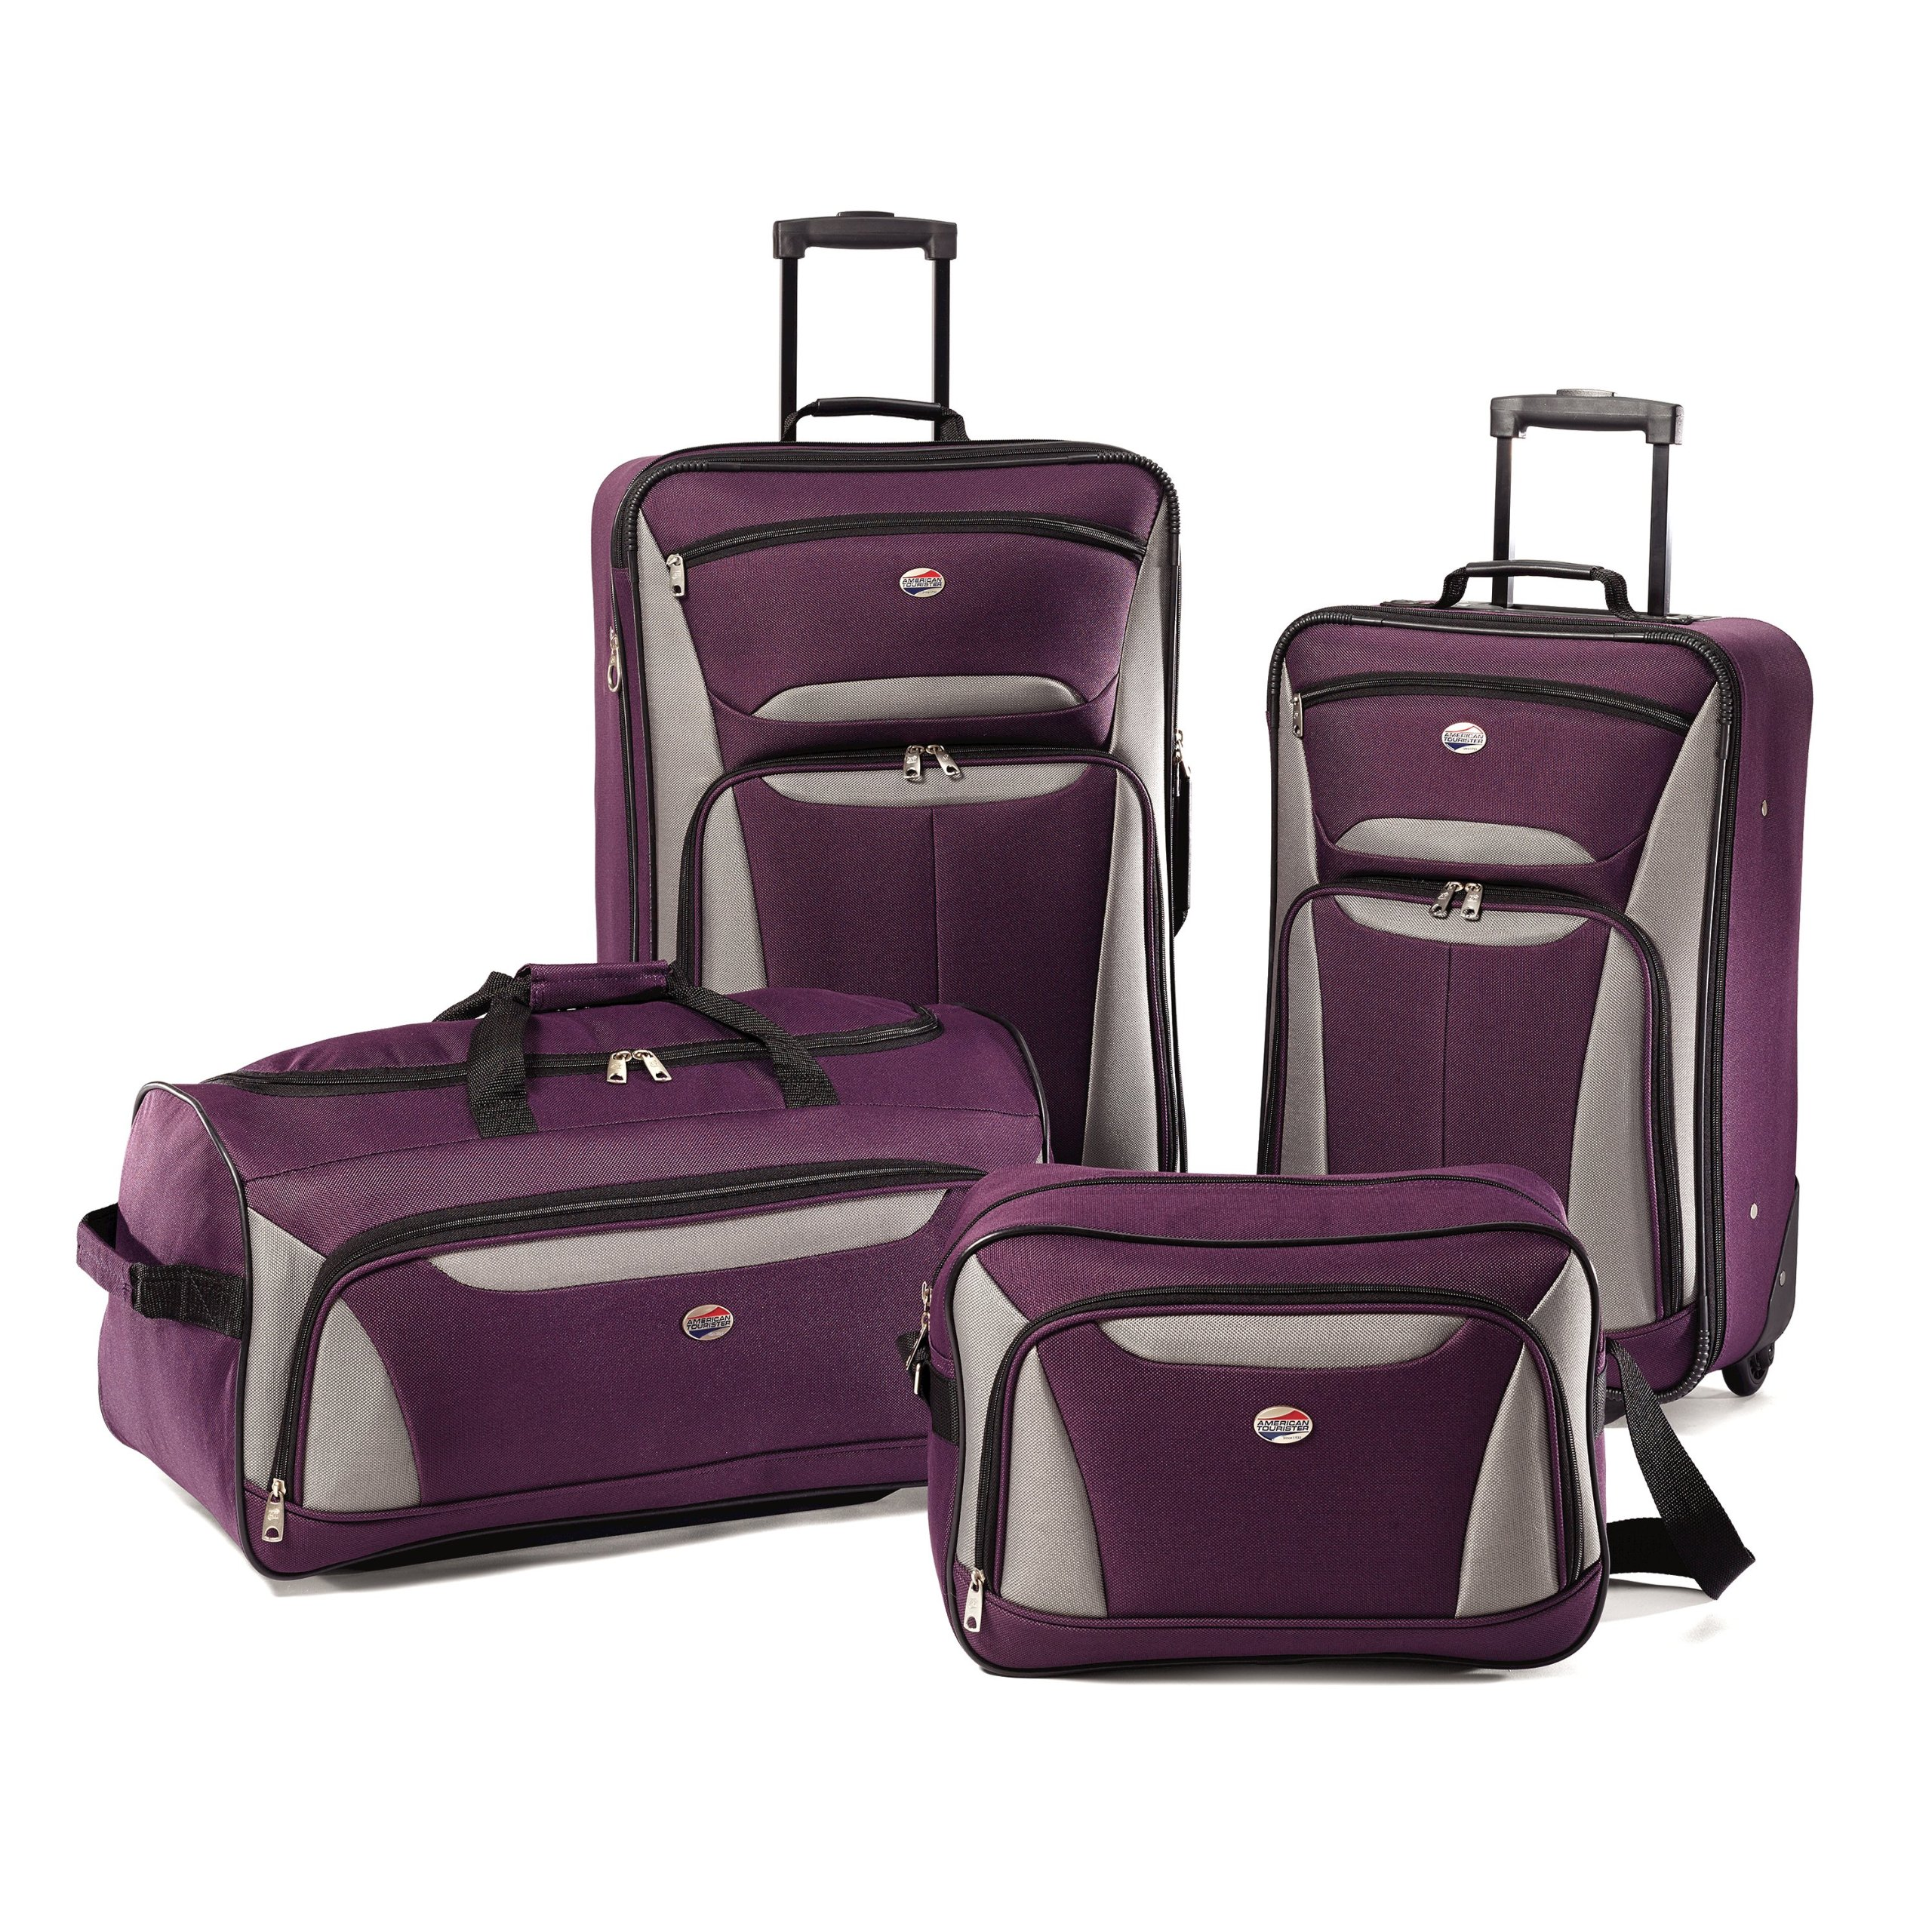 American Tourister Luggage Fieldbrook II 4 Piece Set, Purple/Grey